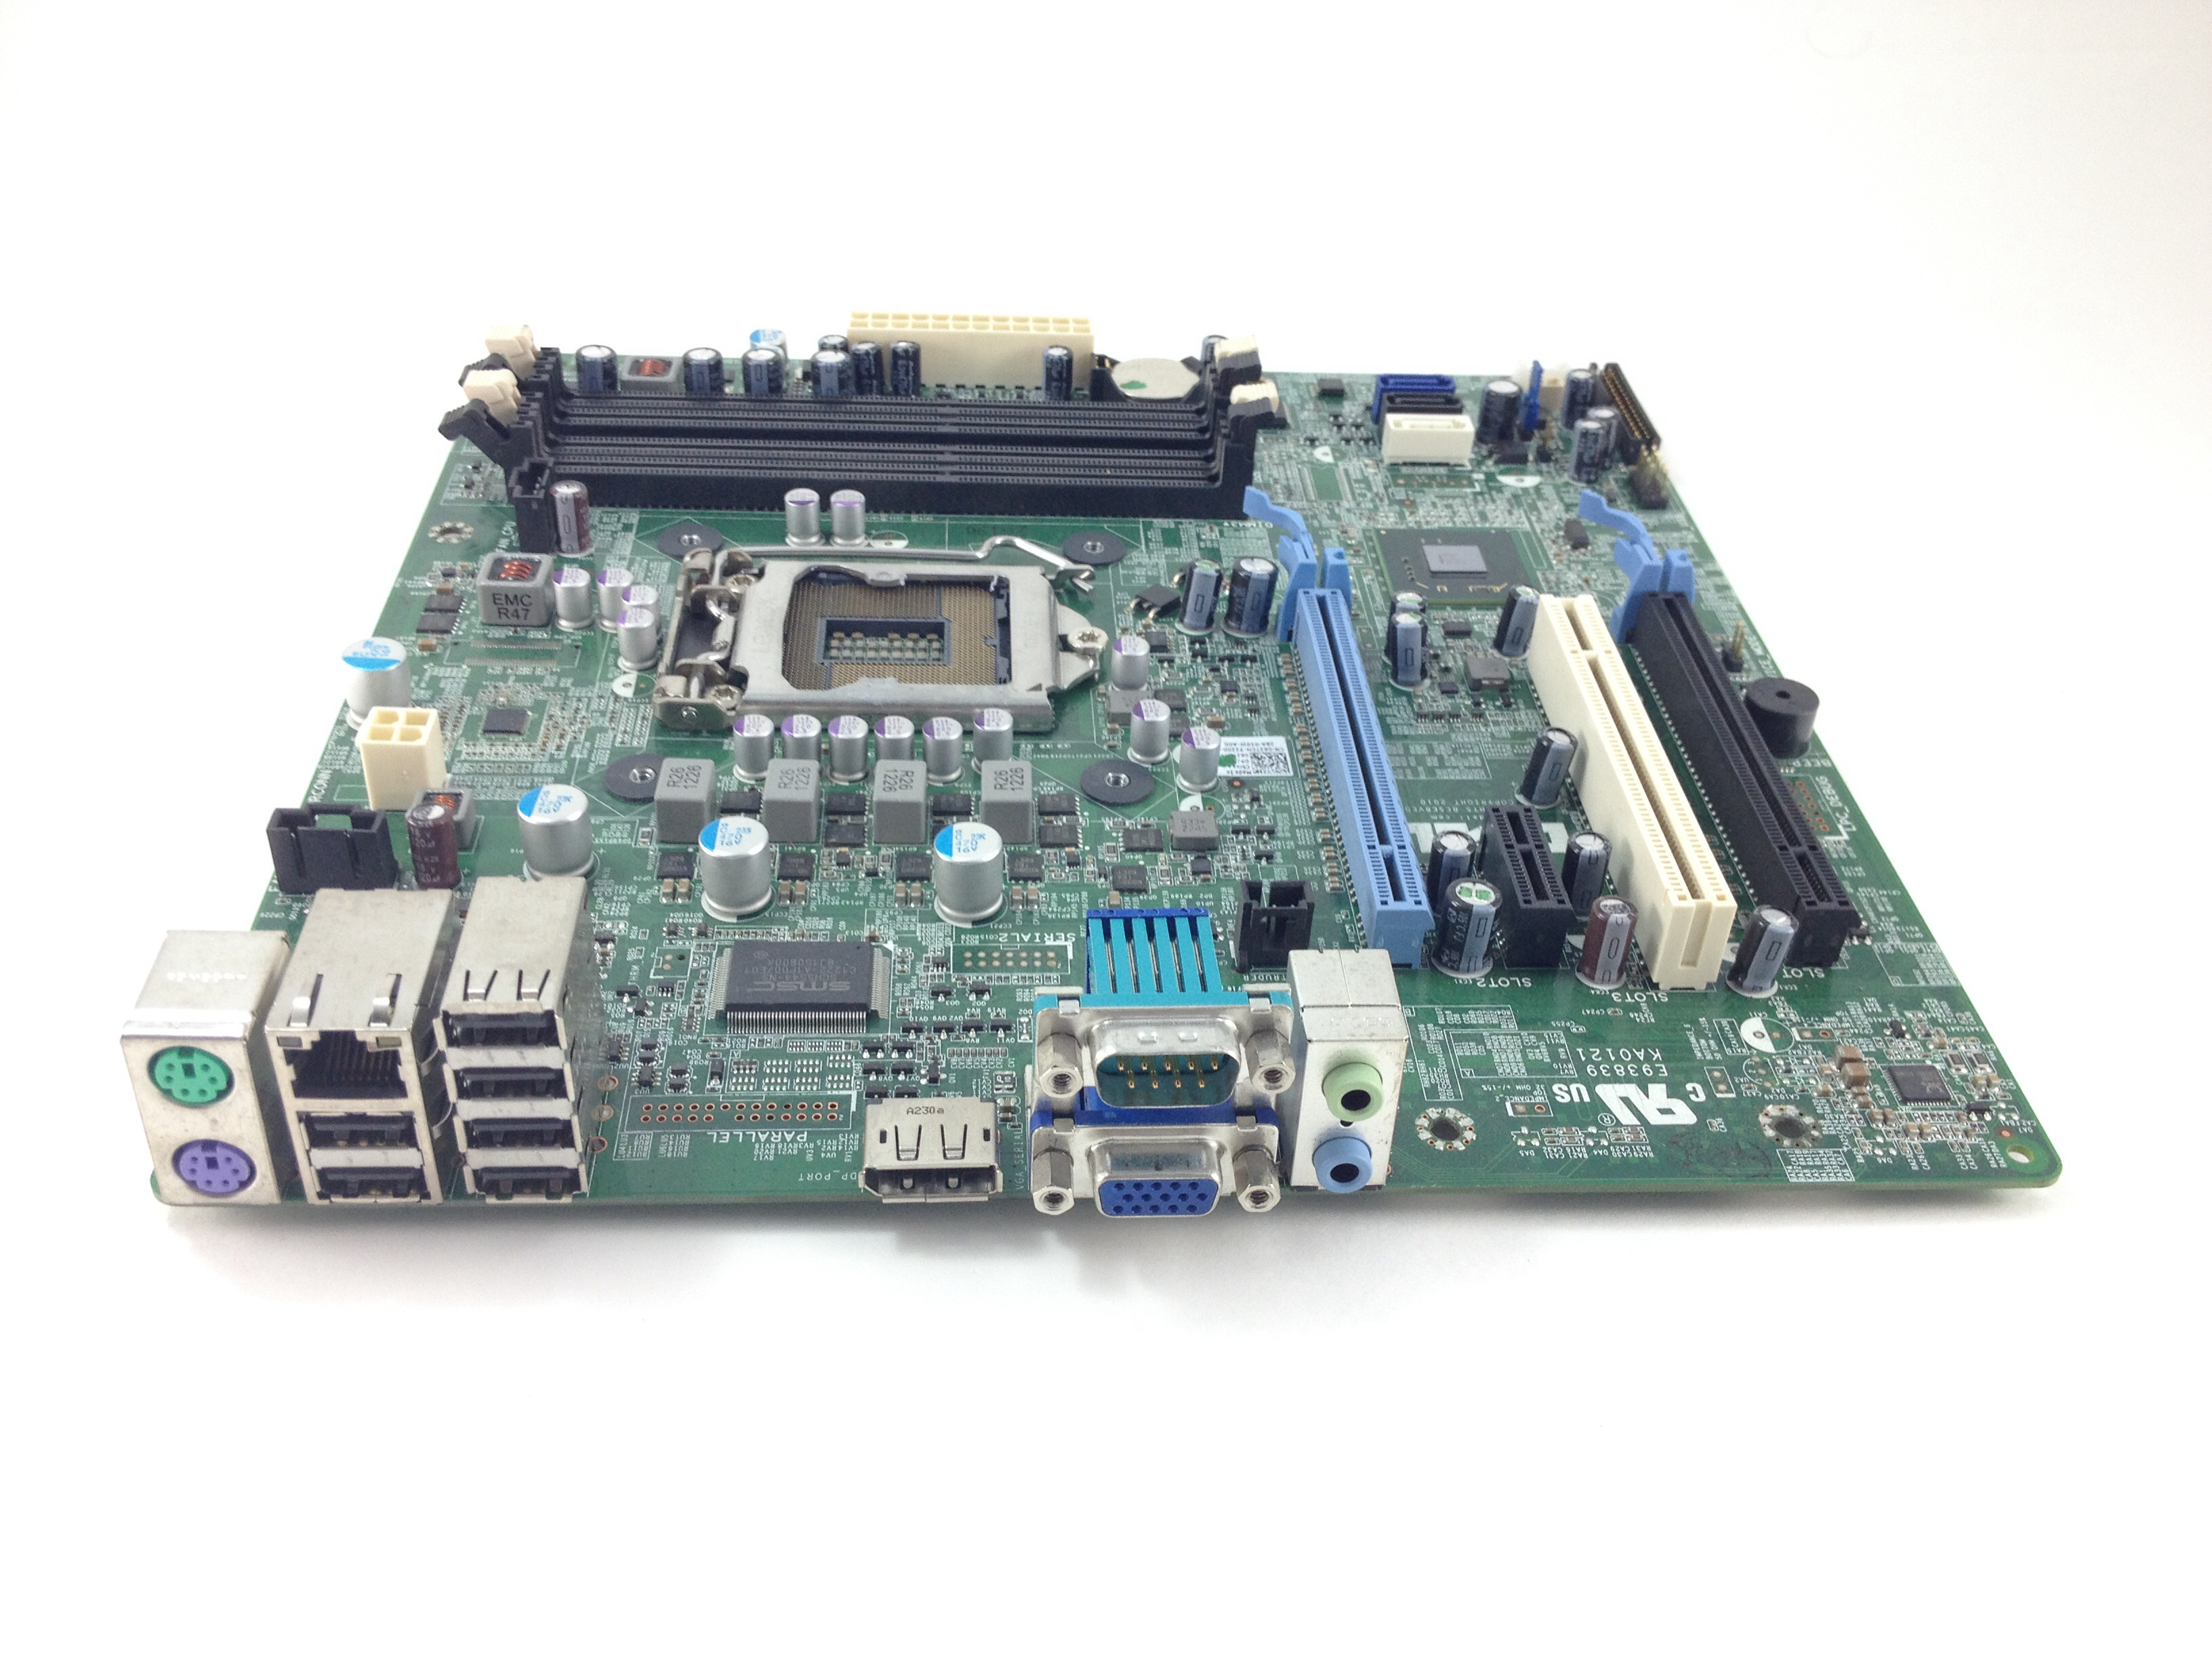 Dell Optilex 790 Desktop Main System Board (62TCH)